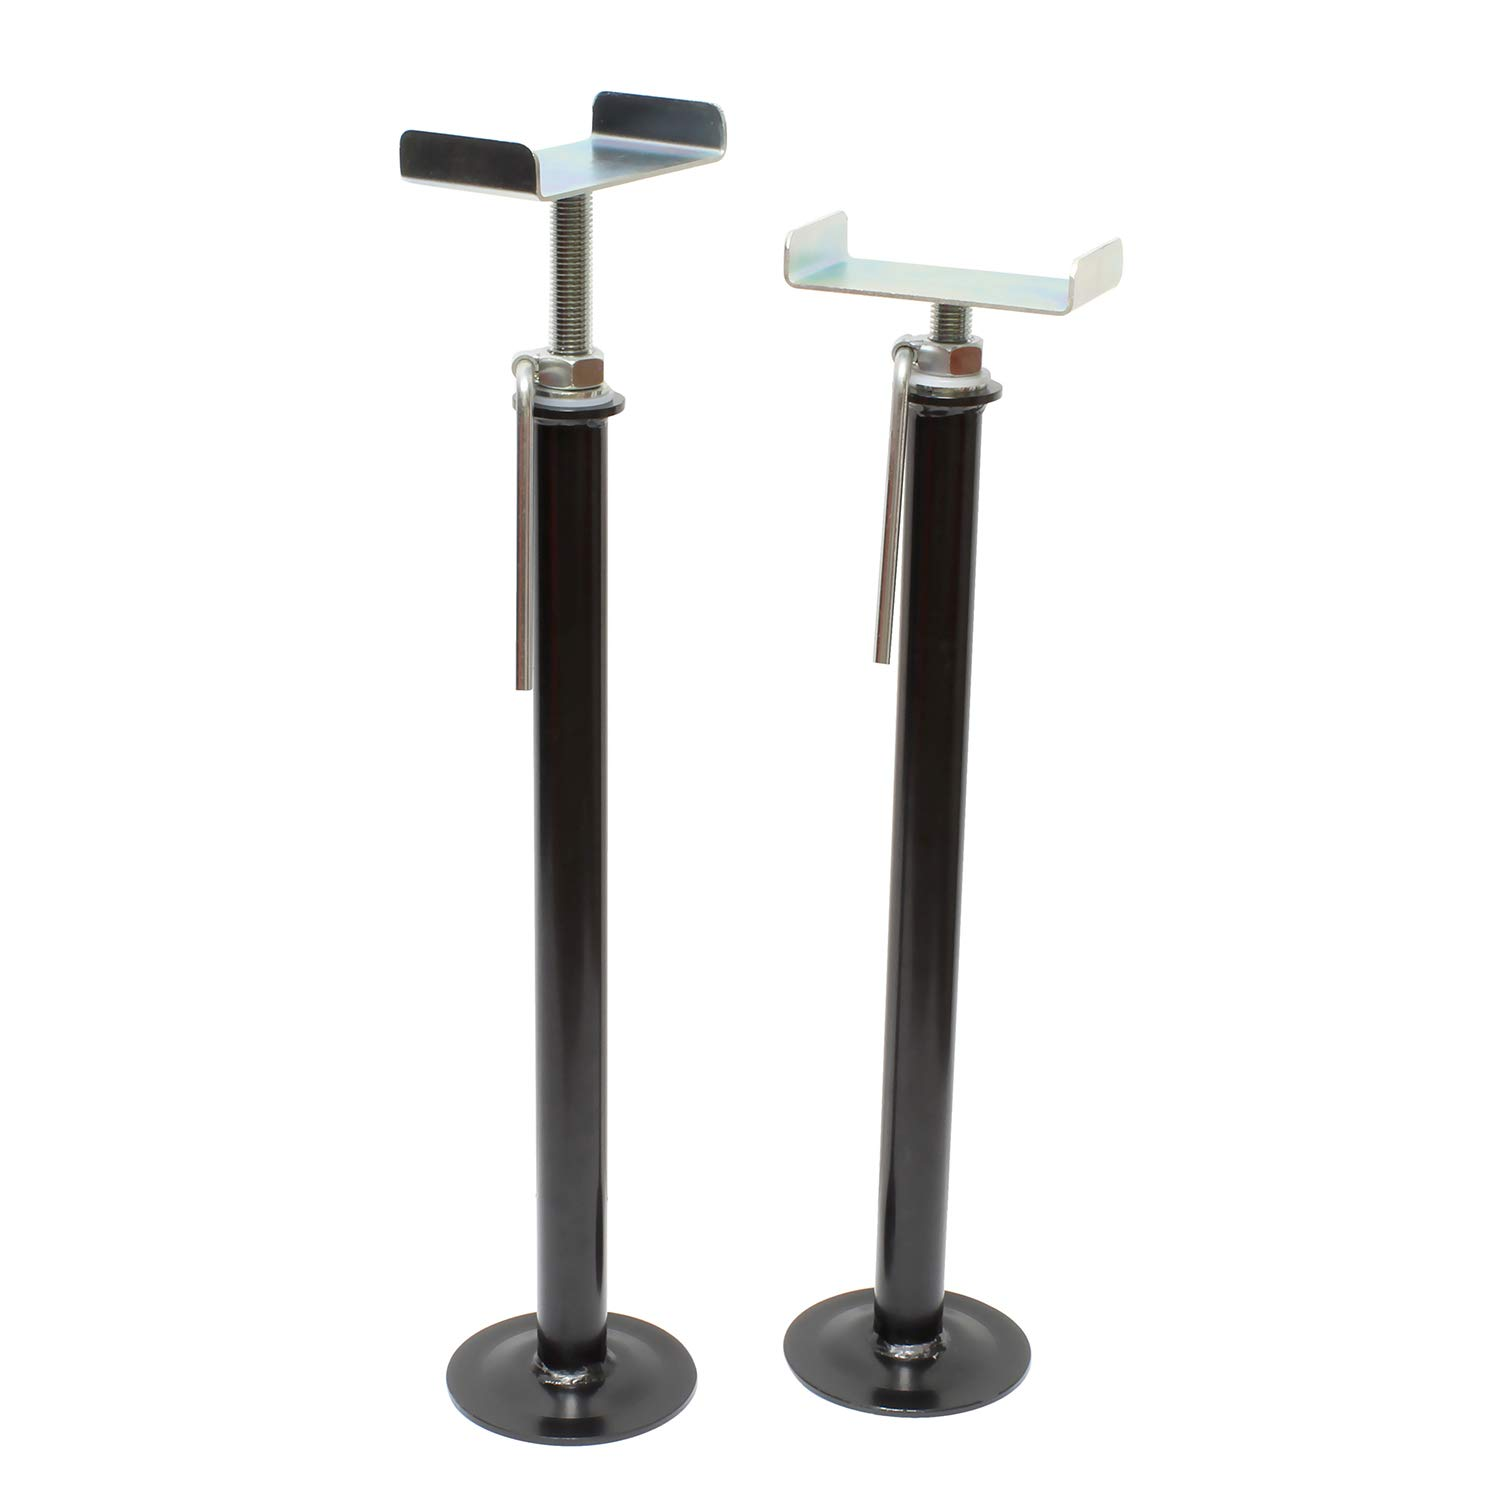 Dumble RV Slide Out Stabilizer Jacks - 16in-28in Travel Trailer Stabilizer Jacks Camper Jack Stands, 2 Piece Set by Dumble